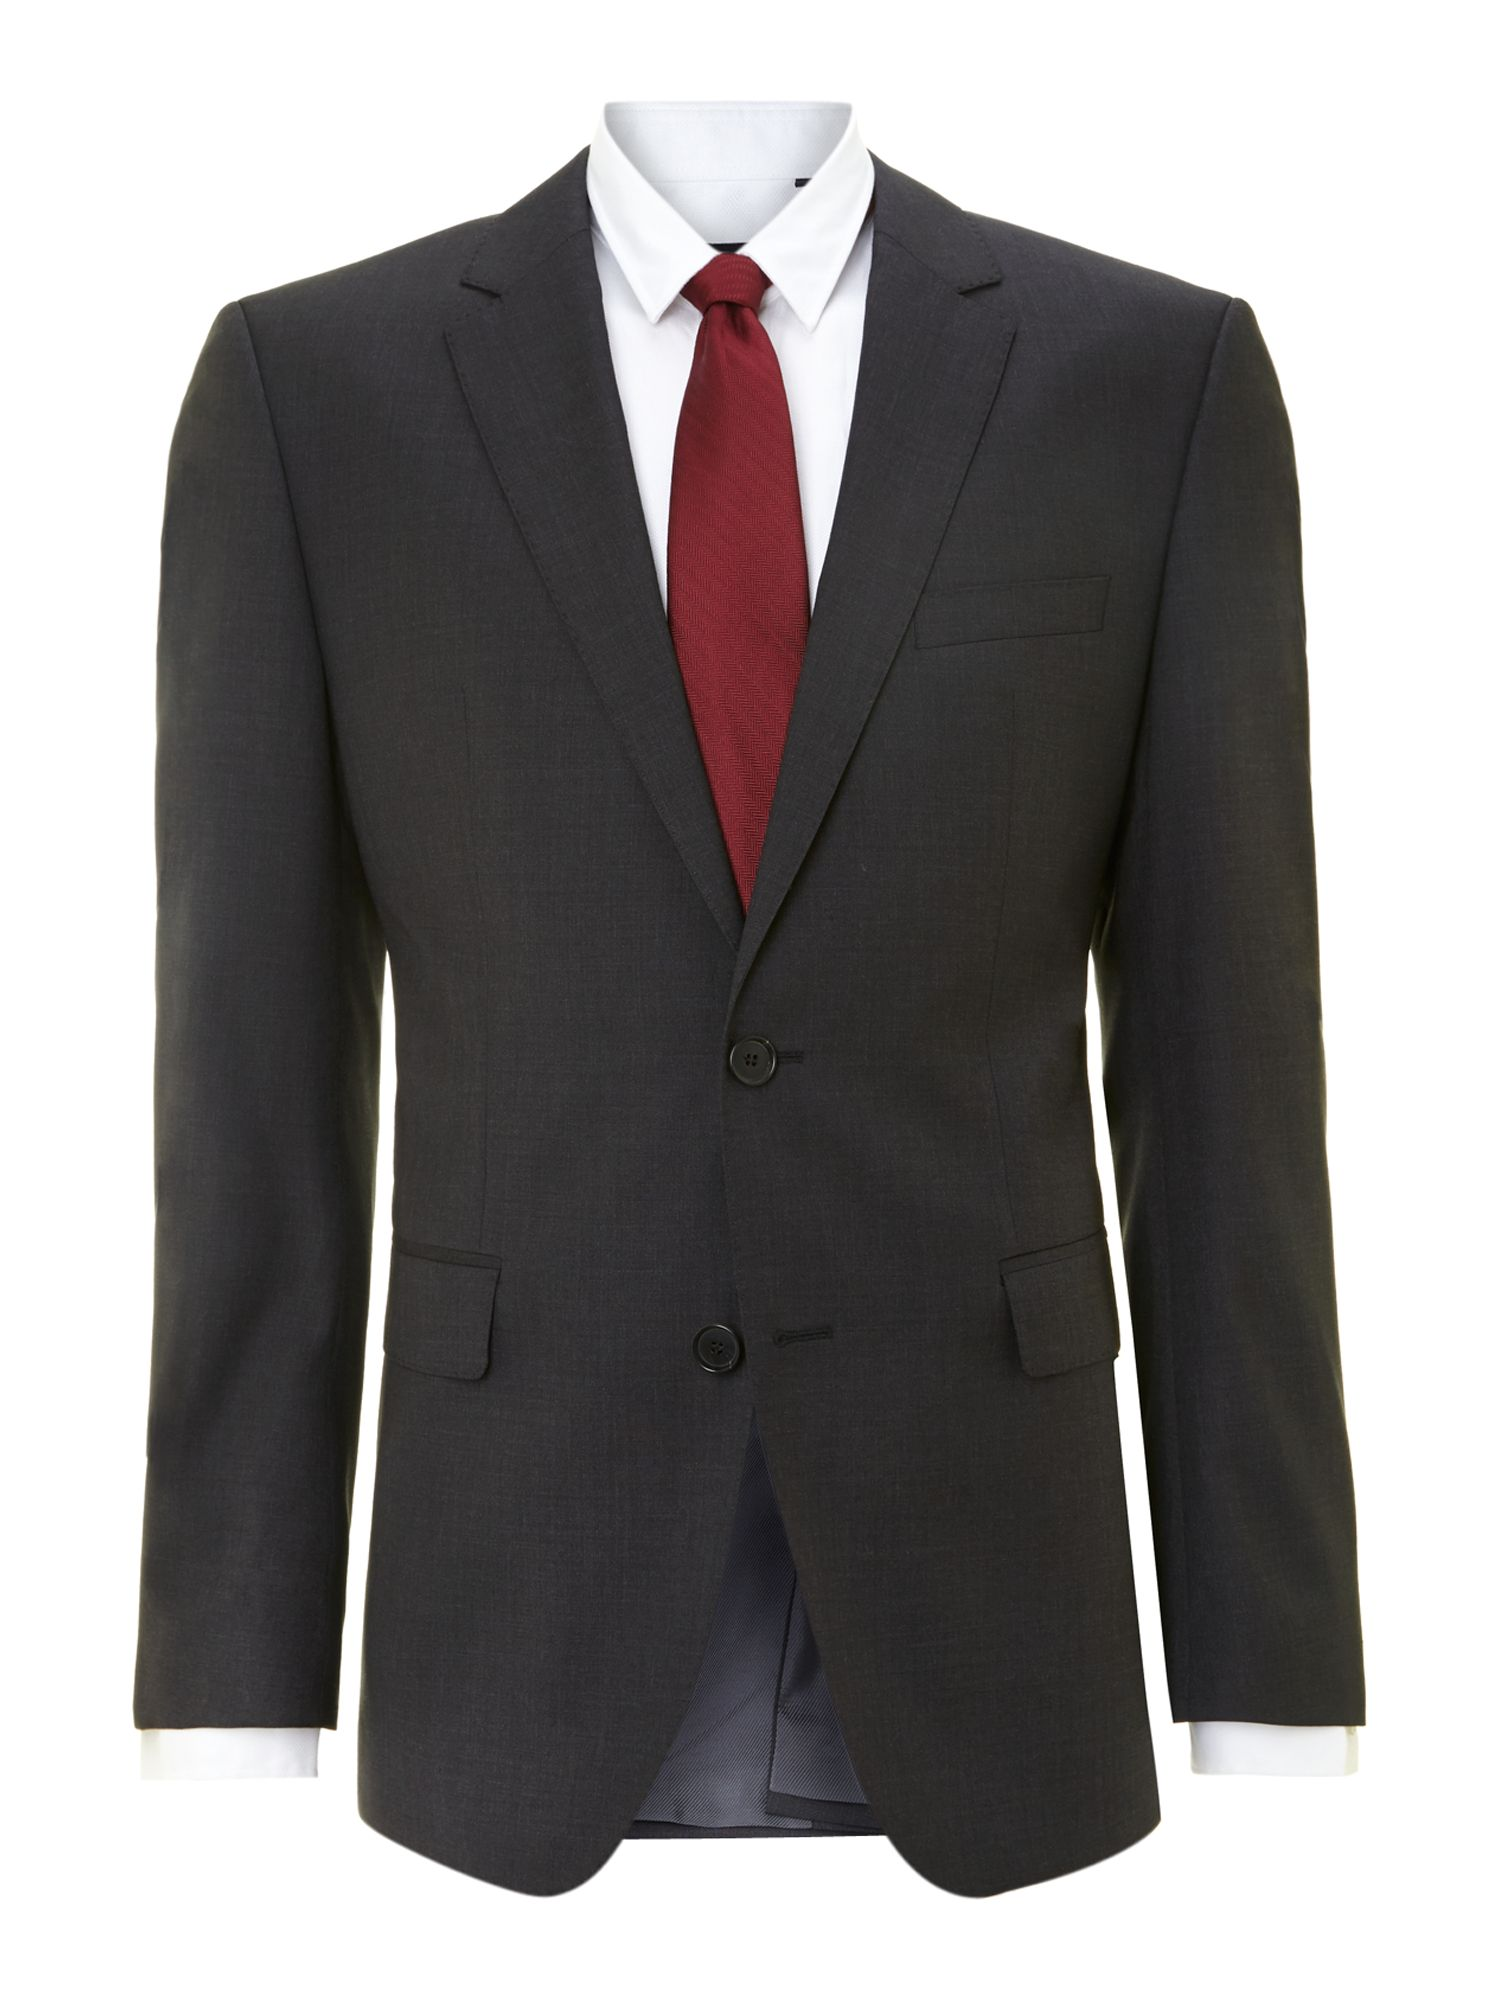 Men&39s Hugo Boss The Rider regular fit suit jacket Charcoal